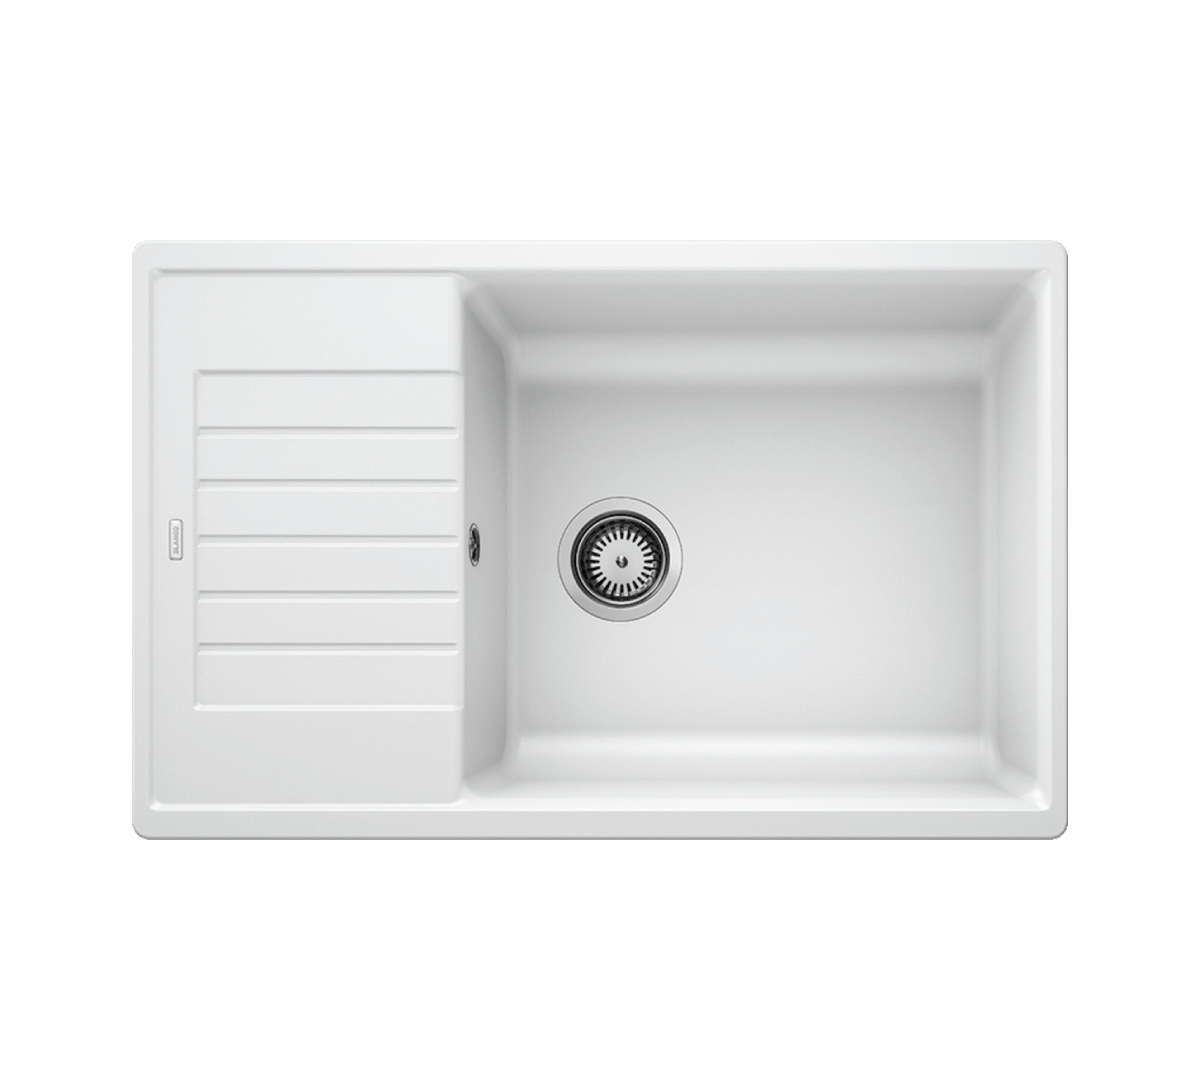 Ala Zia XL 6 S Inset Compact Sink & Tap Pack Rock Grey